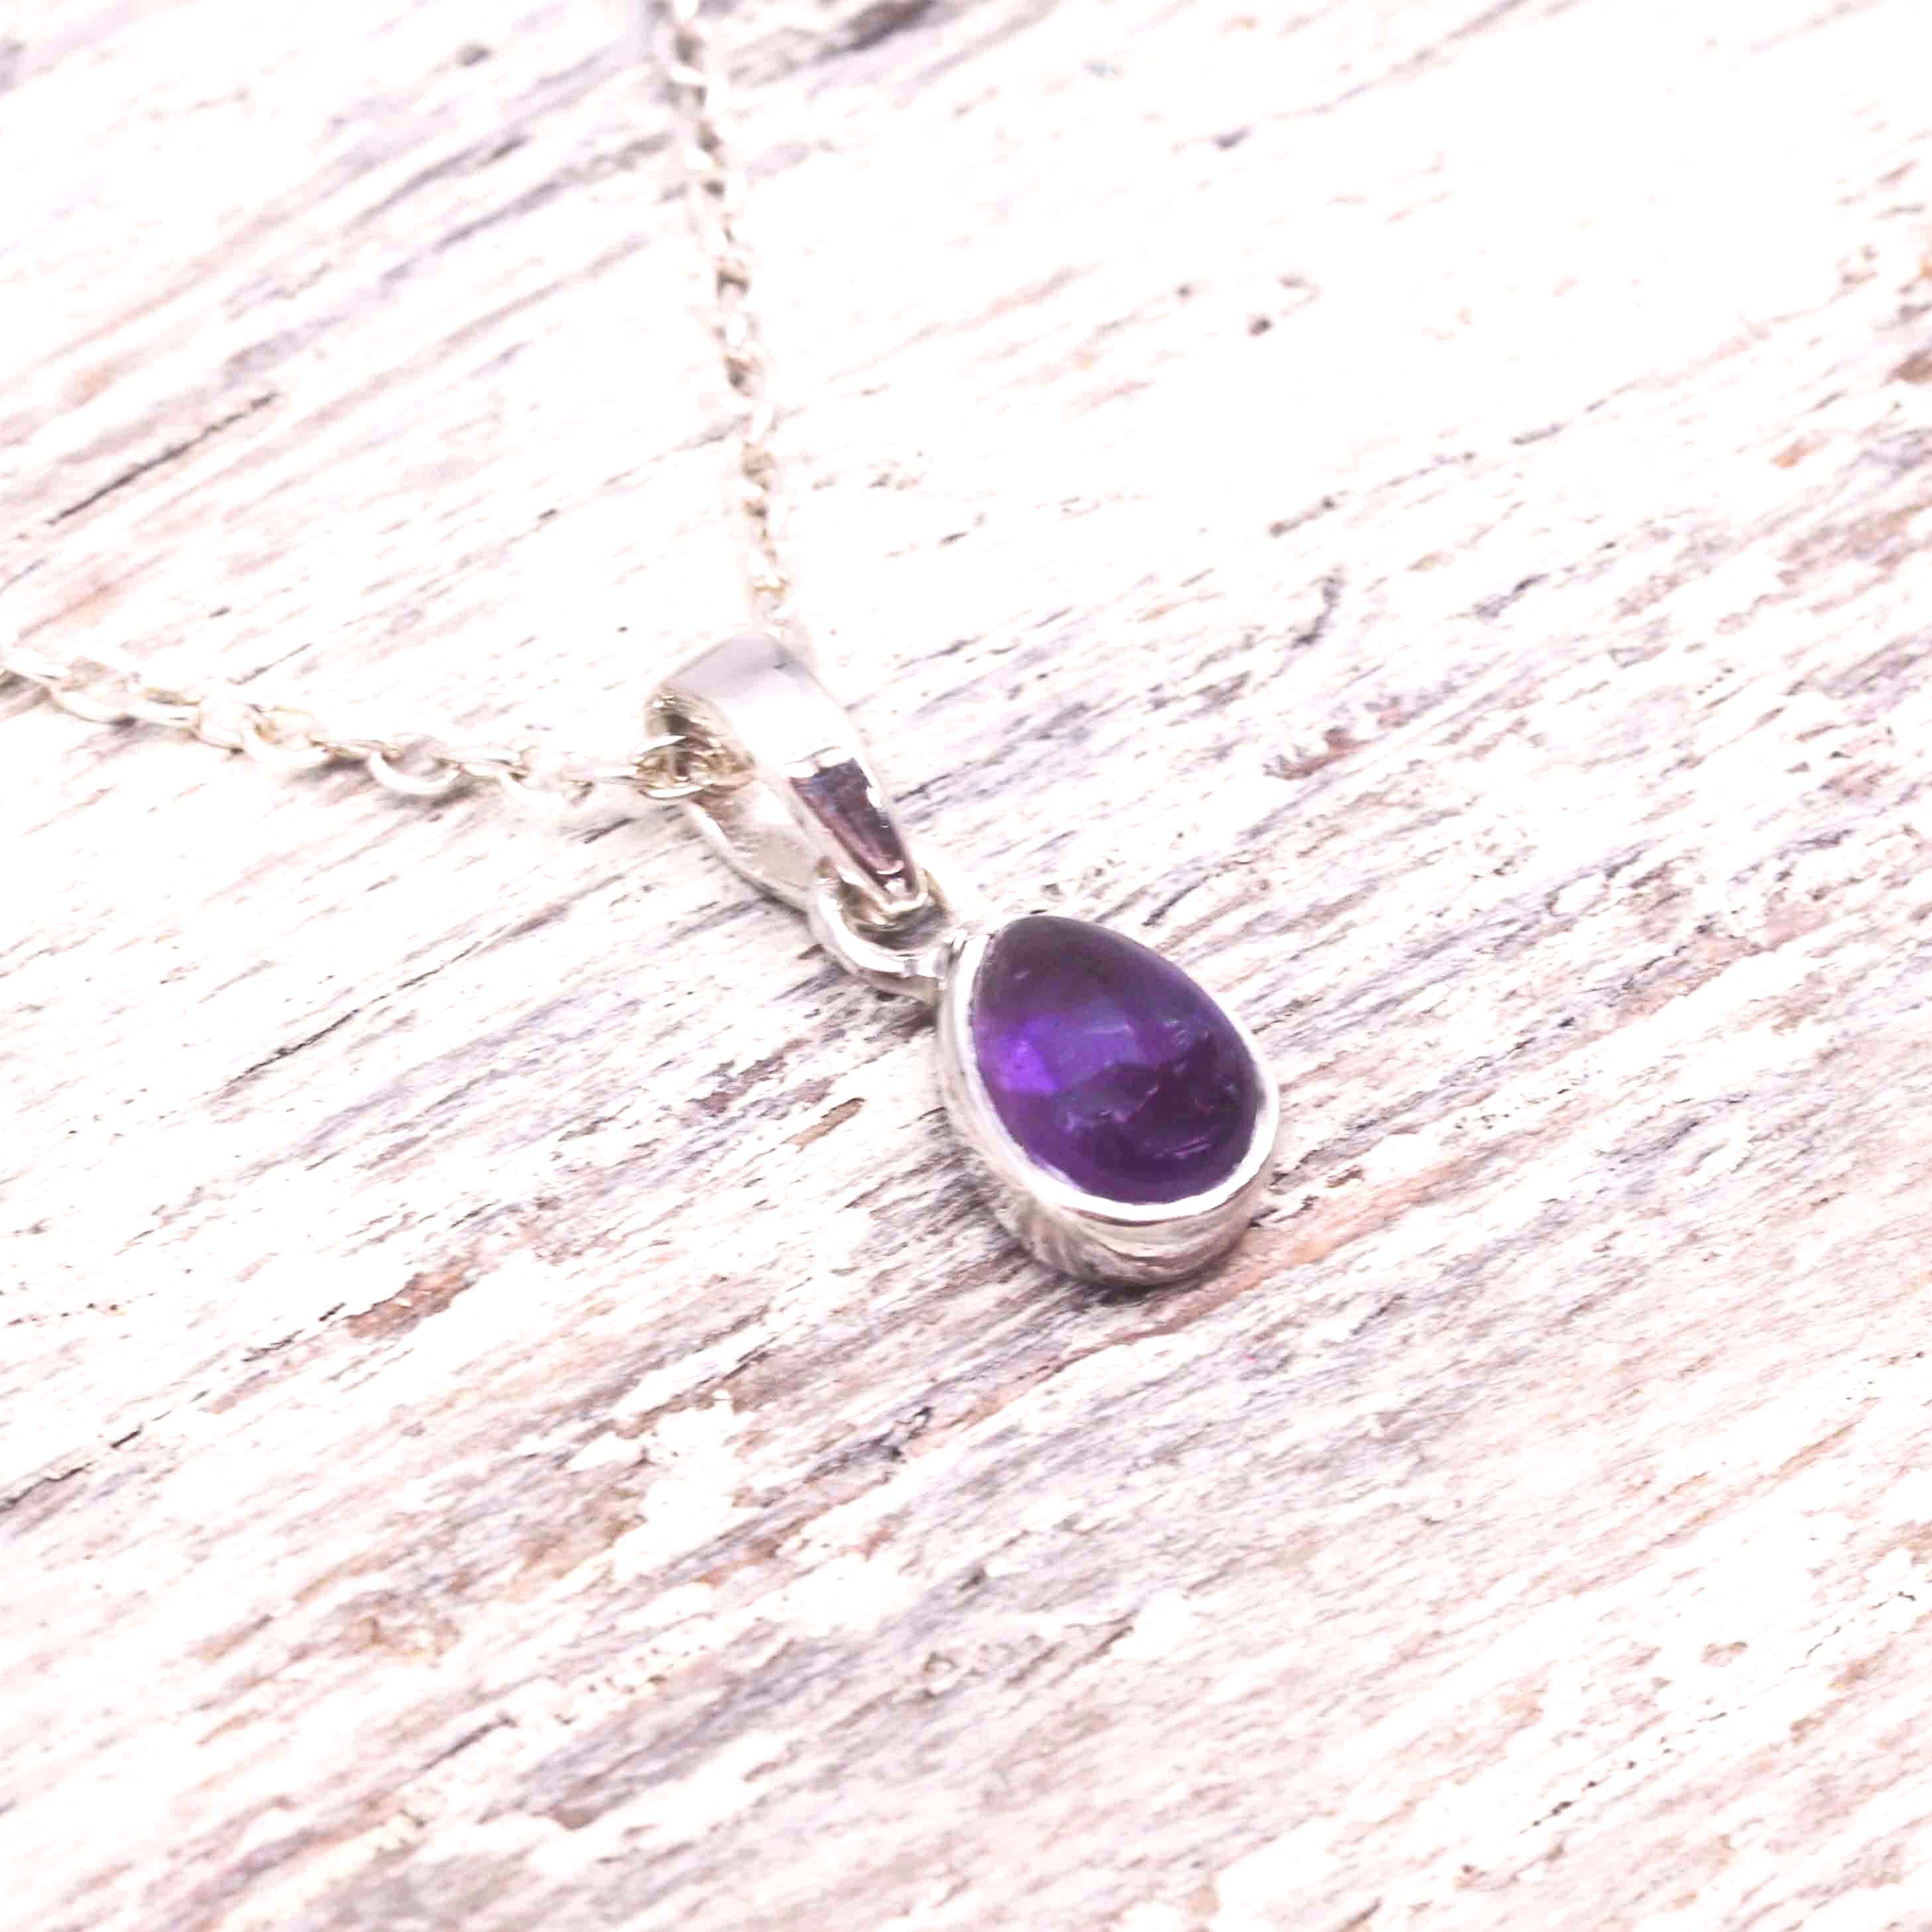 Amethyst Pendant Necklace. Bohemian Gypsy Jewellery. Indie and Harper.